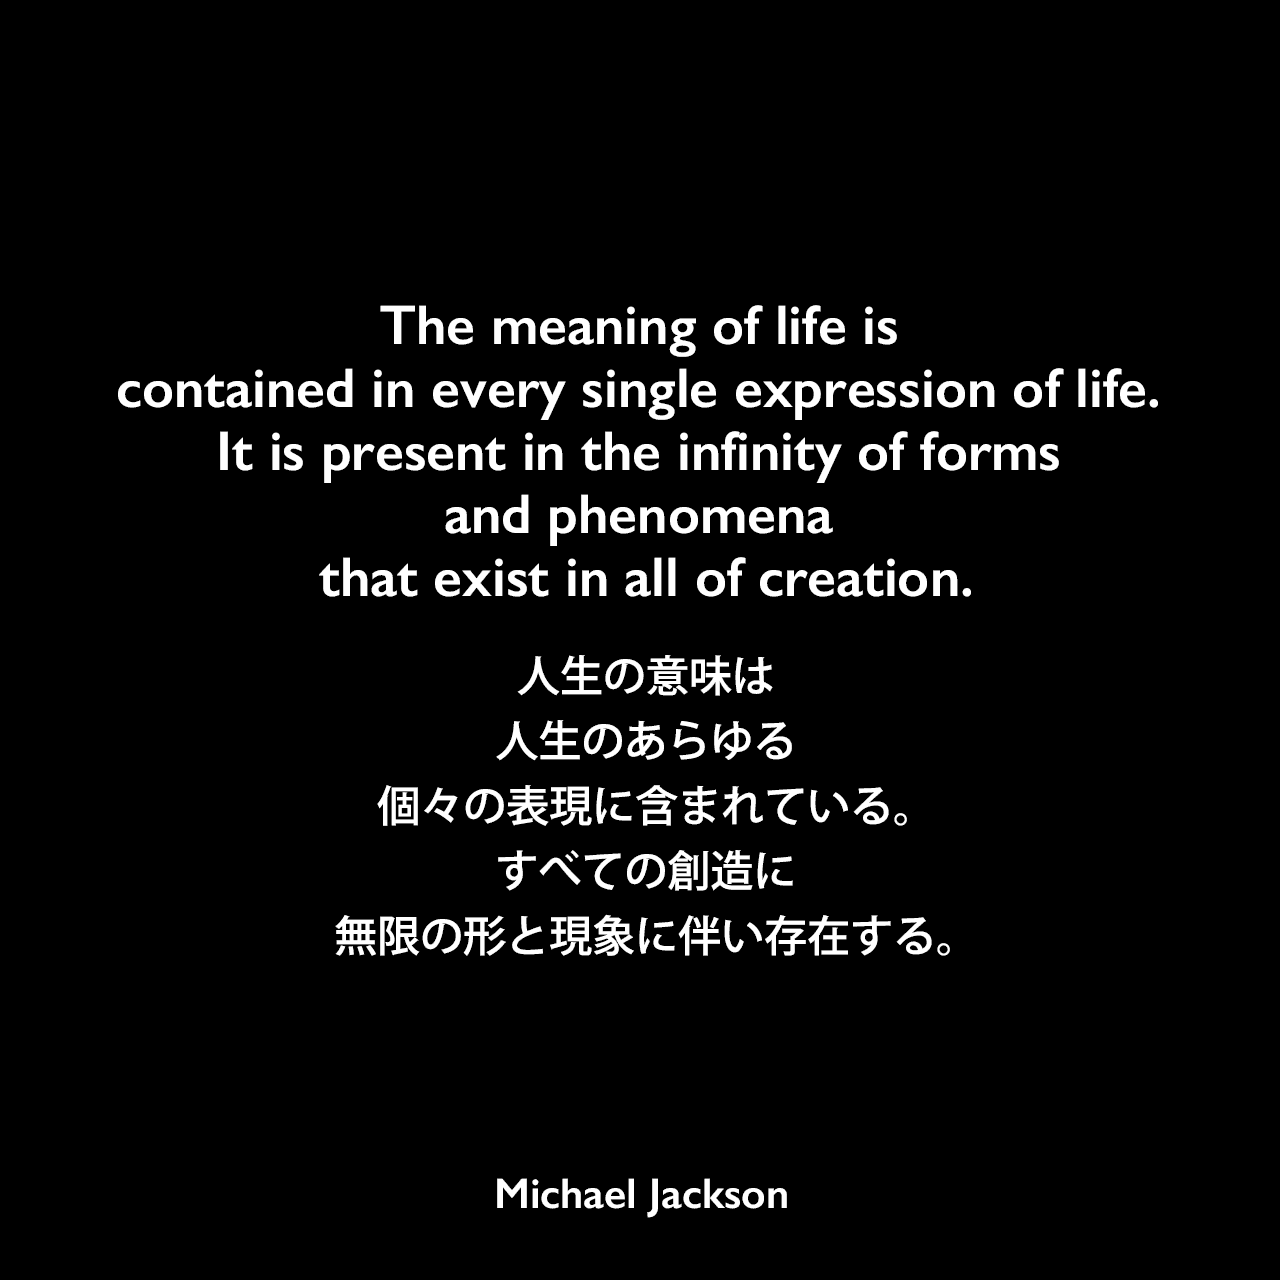 The meaning of life is contained in every single expression of life. It is present in the infinity of forms and phenomena that exist in all of creation.人生の意味は人生のあらゆる個々の表現に含まれている。すべての創造に、無限の形と現象に伴い存在する。Michael Jackson